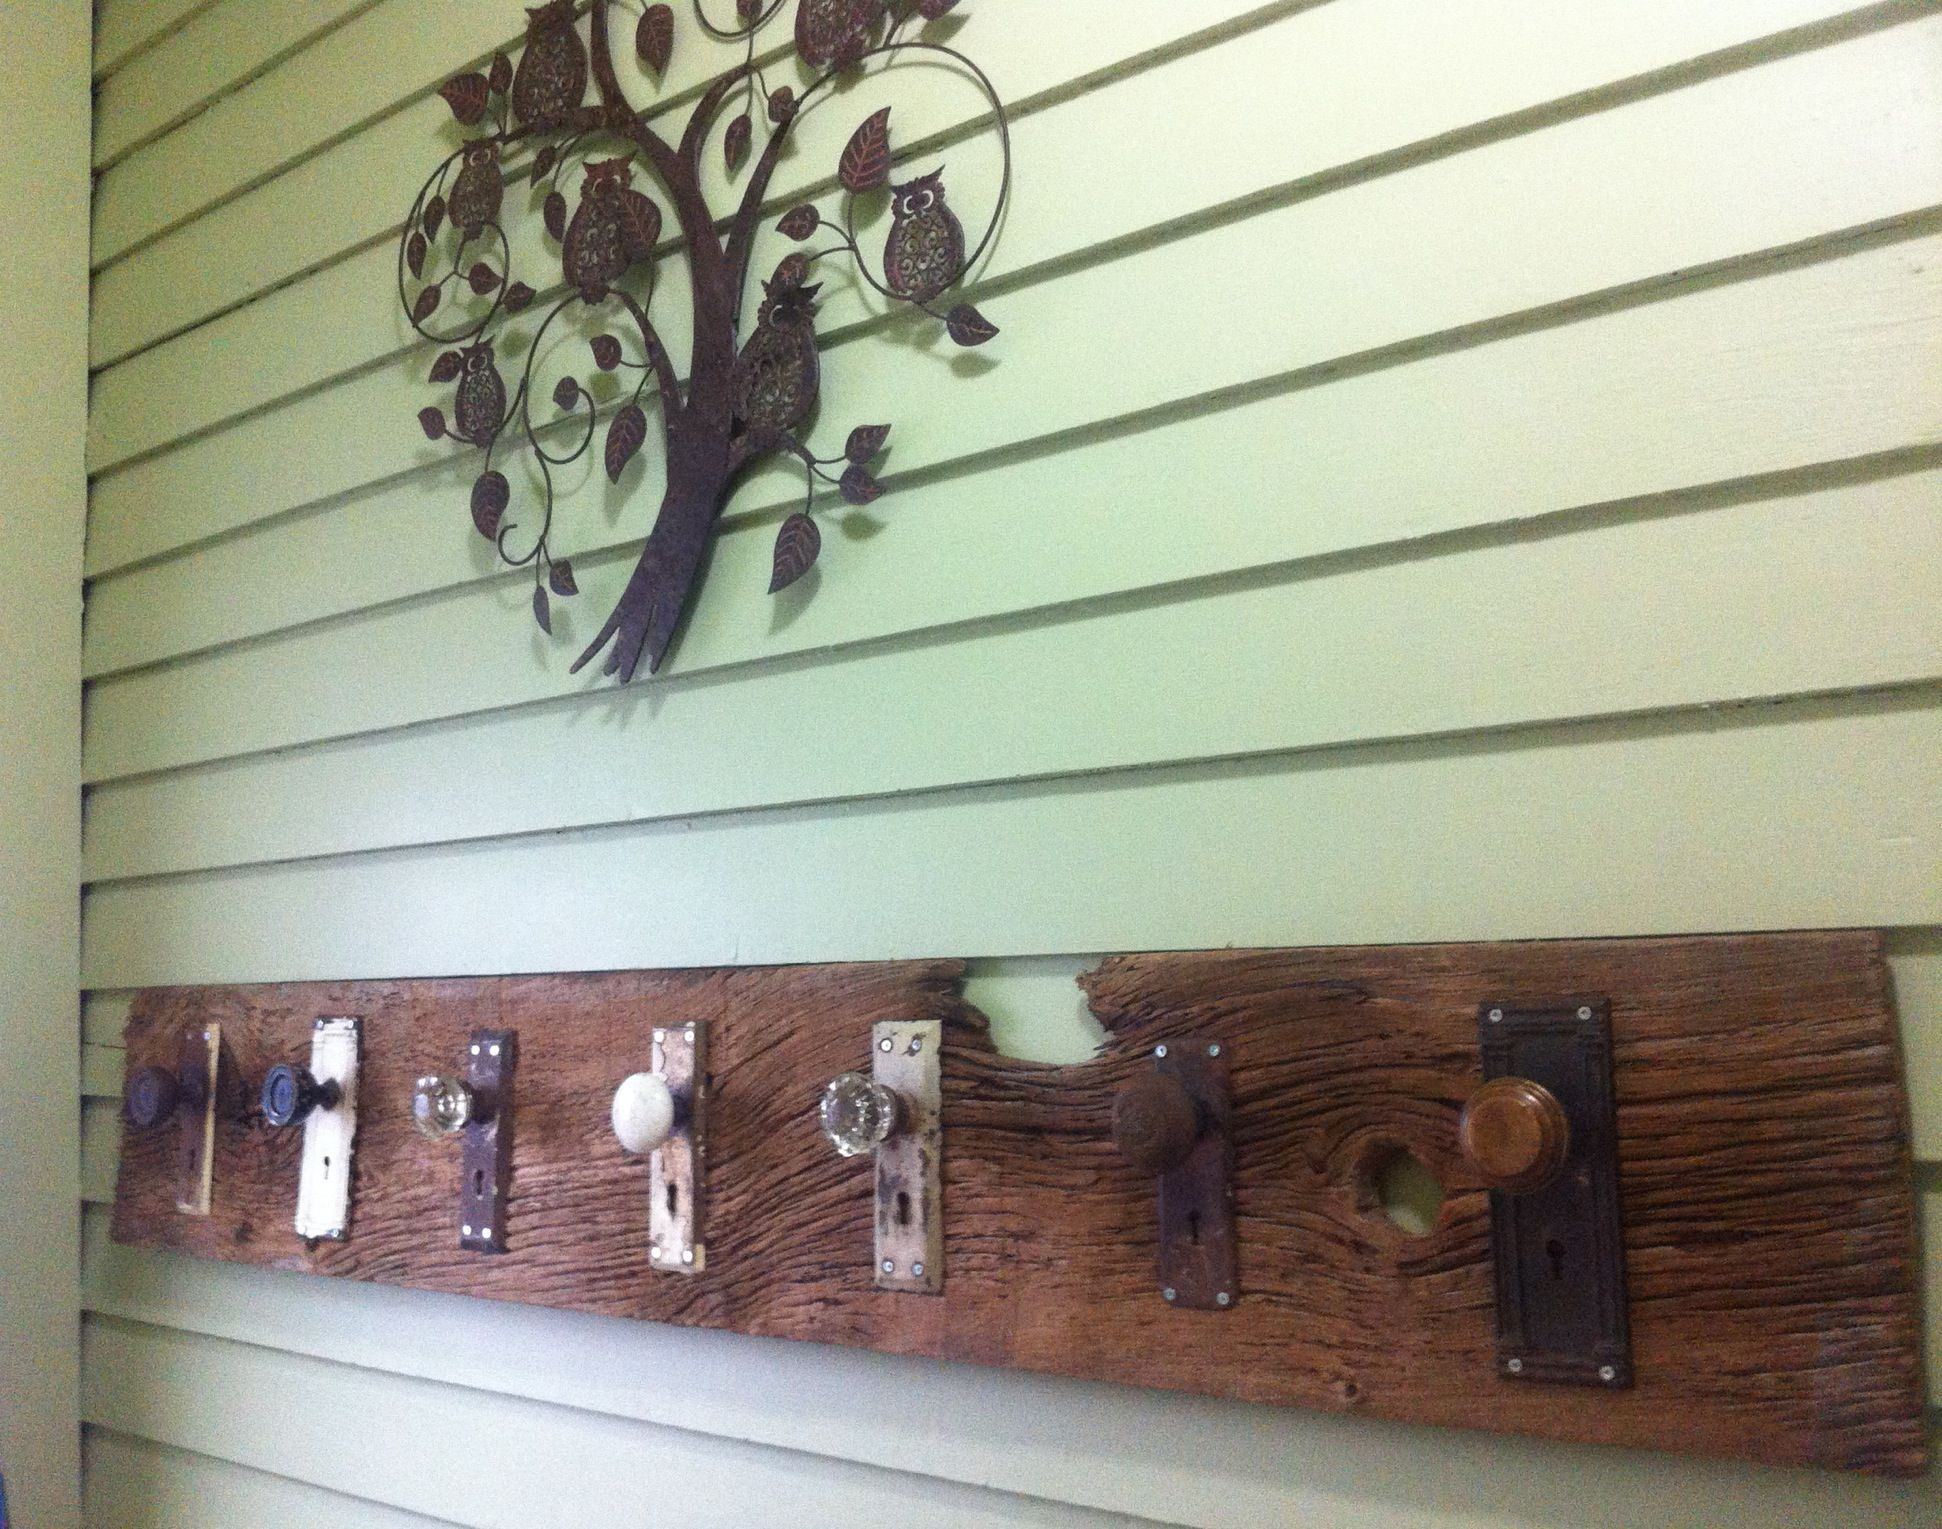 Carpentry Equipment For Sale | Diy coat rack, Antique door knobs and ...